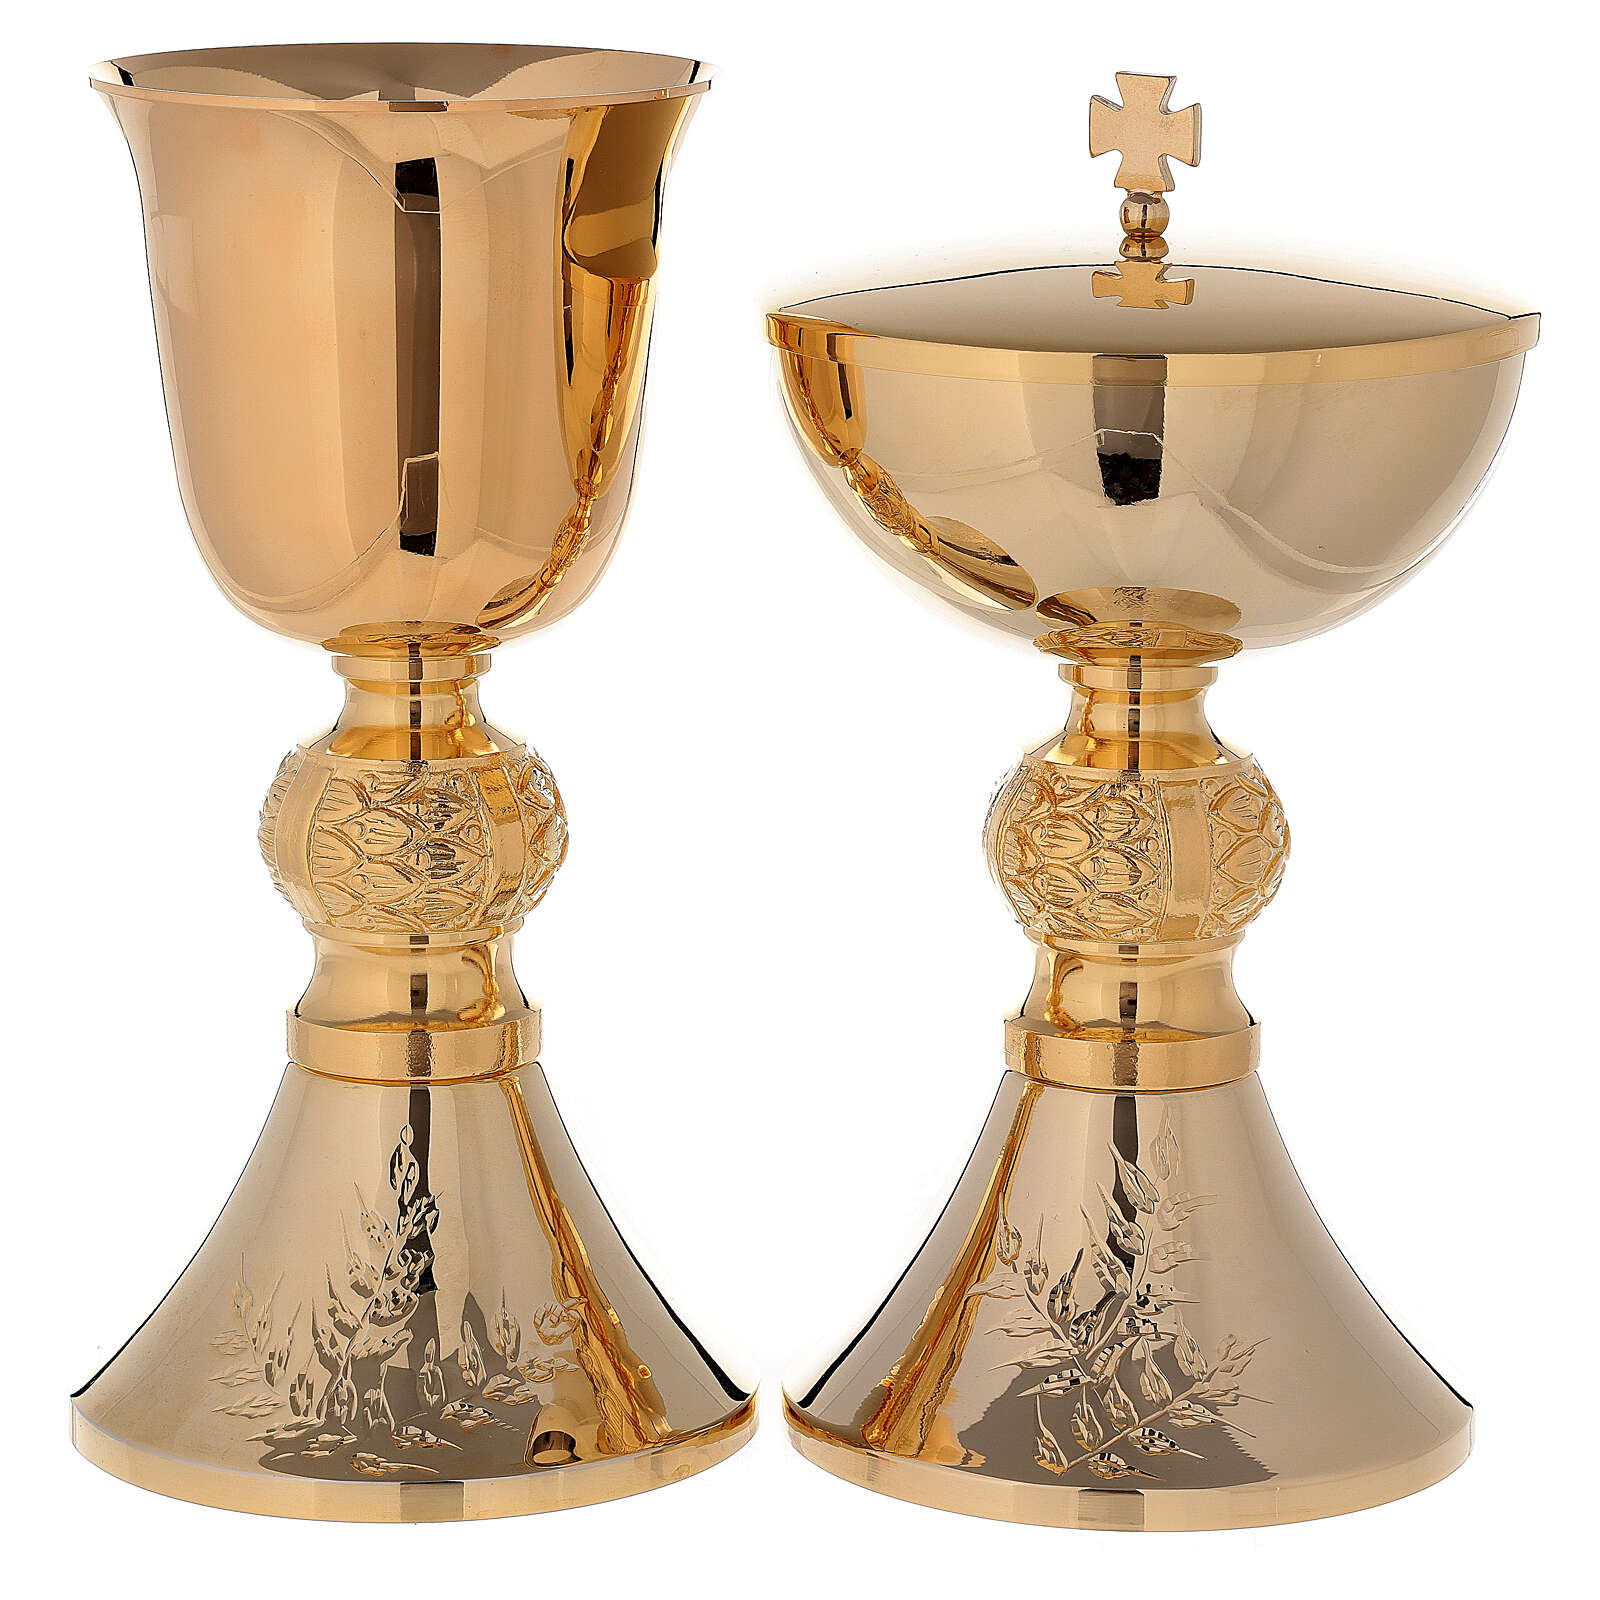 Chalice and ciborium 24-karat gold plated brass with diamond finished base leaves pattern 4